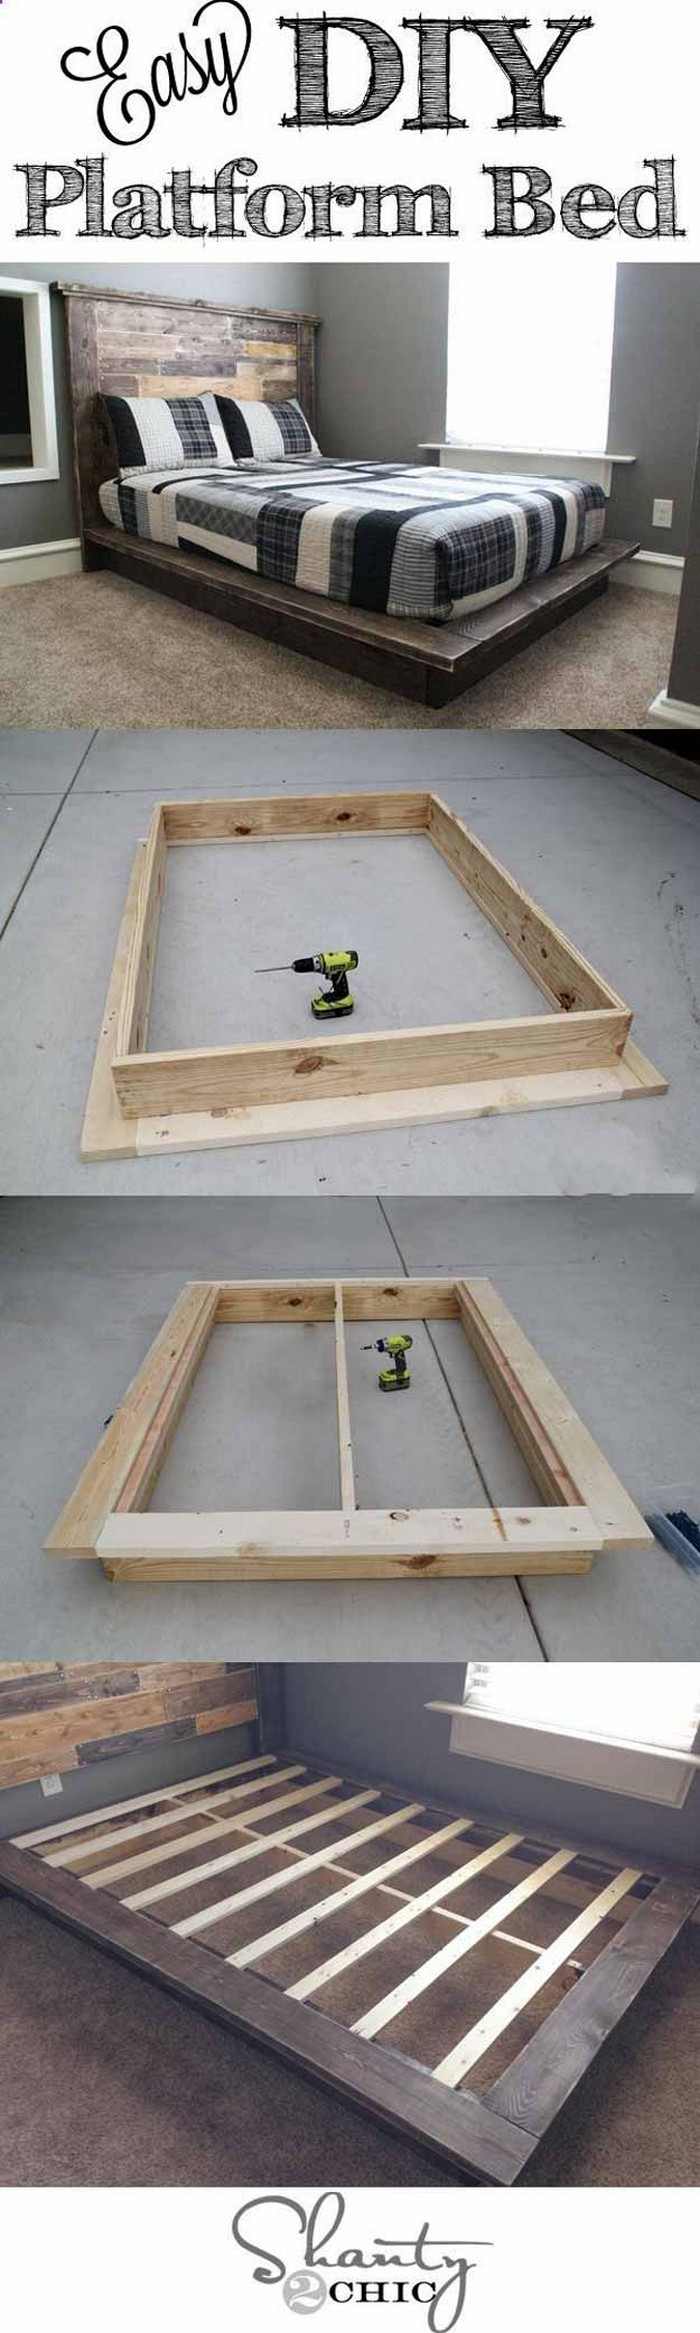 Easy DIY Platform Bed - diy bed frame - DIY Bed Plans -diy bed